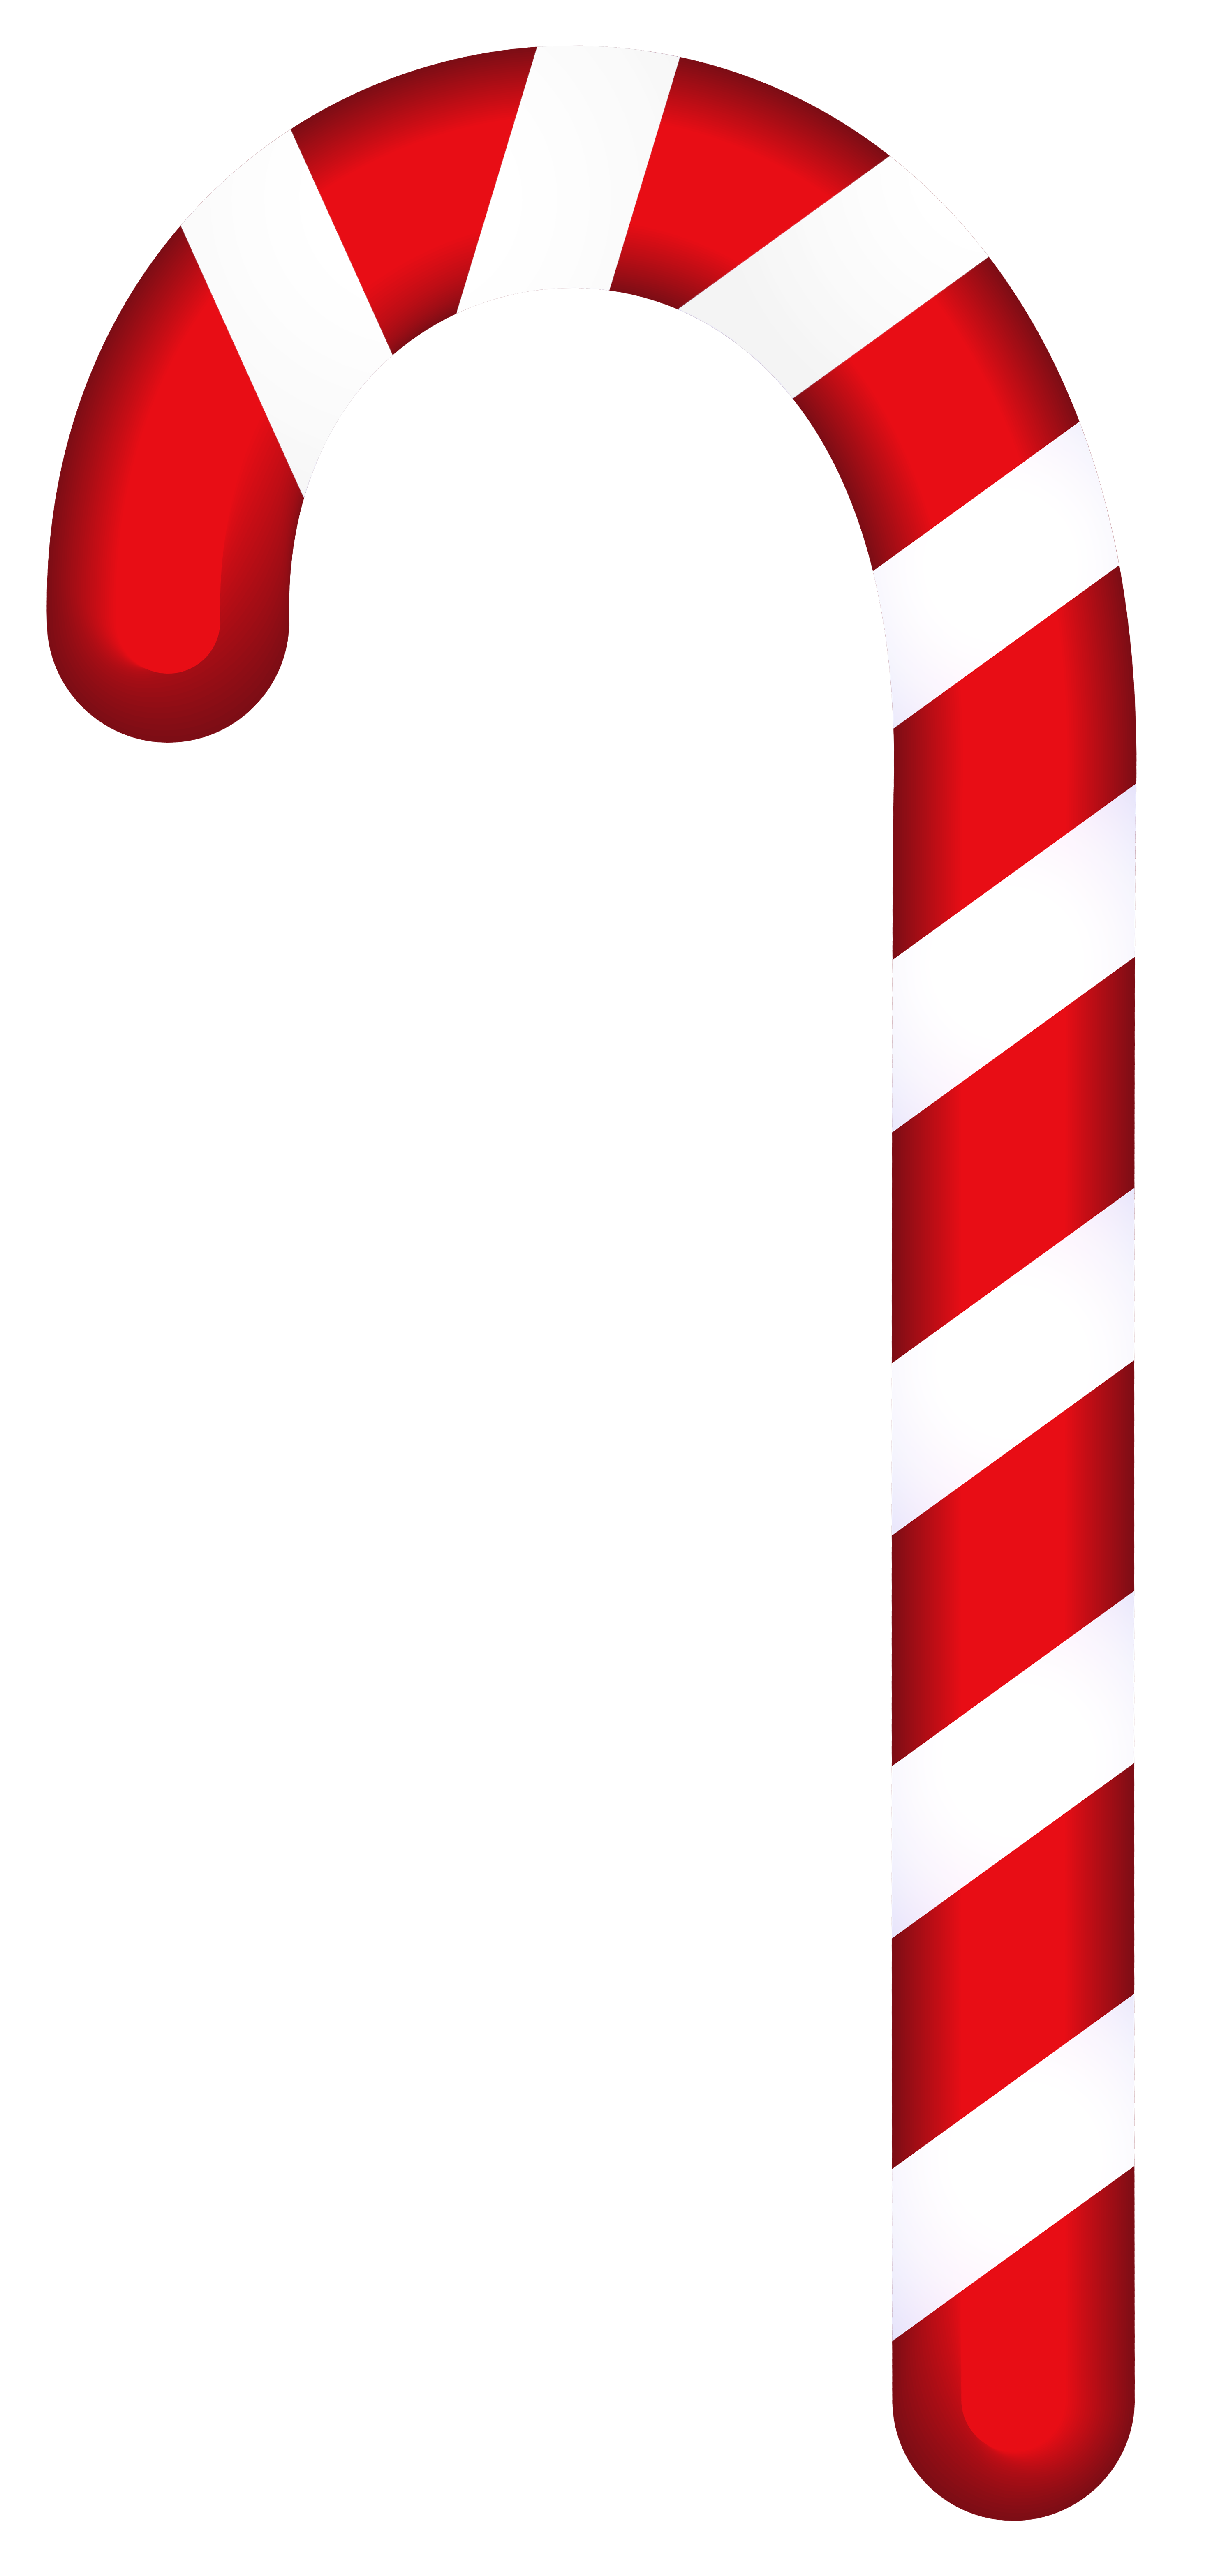 Candy cane clipart png. Clip art image gallery